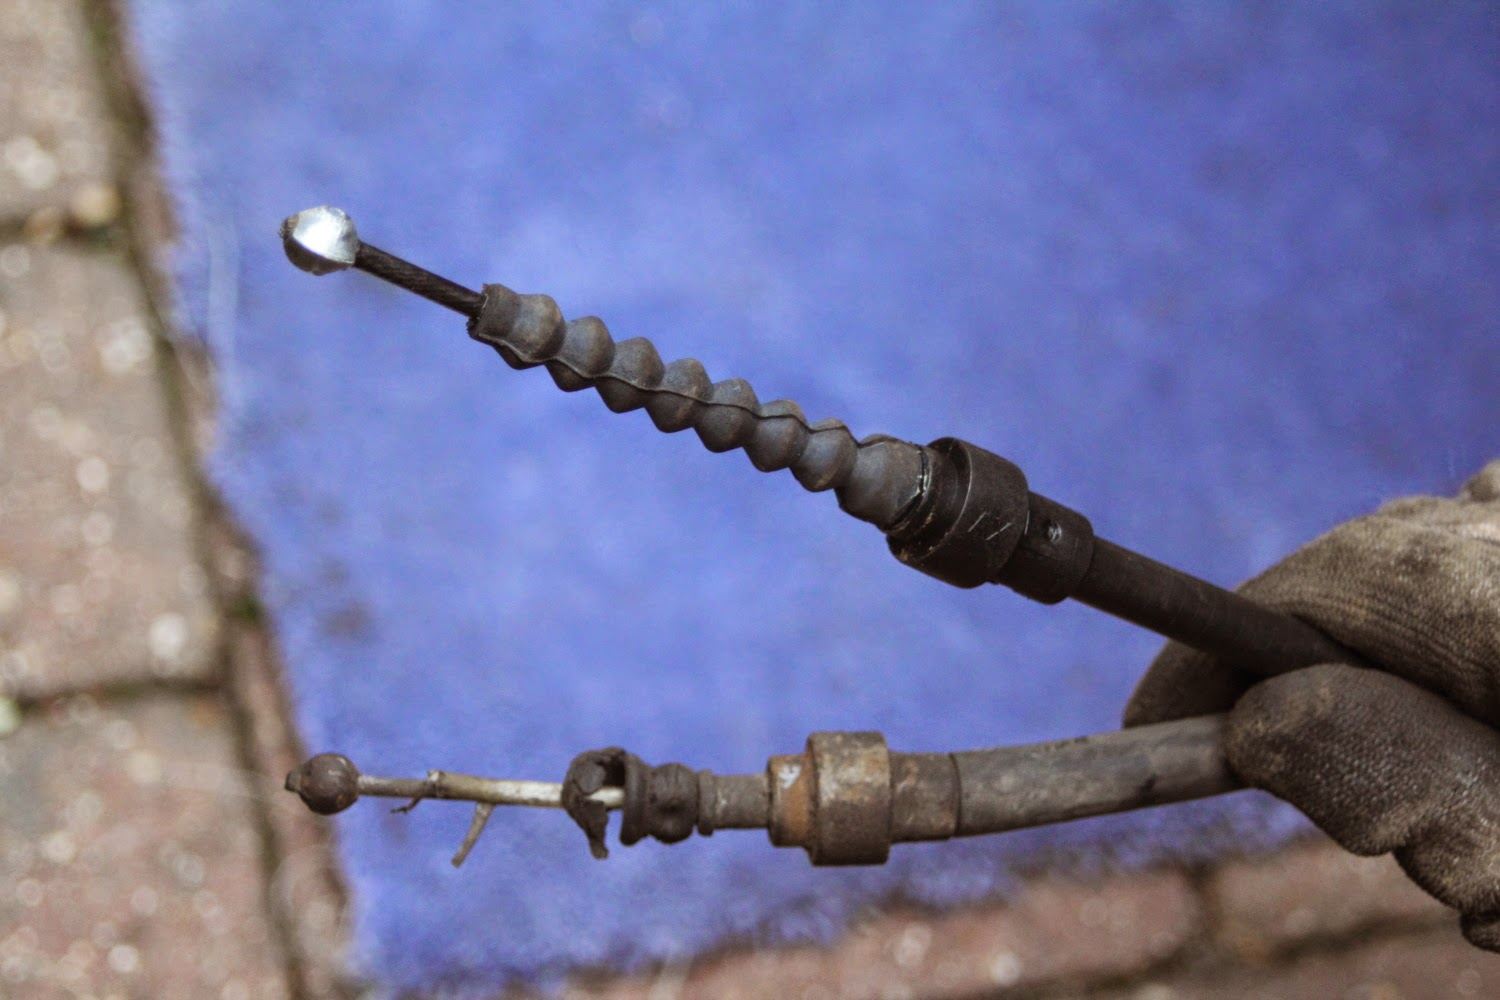 Golf MK2 Replacing Handbrake Cable - Old vs New